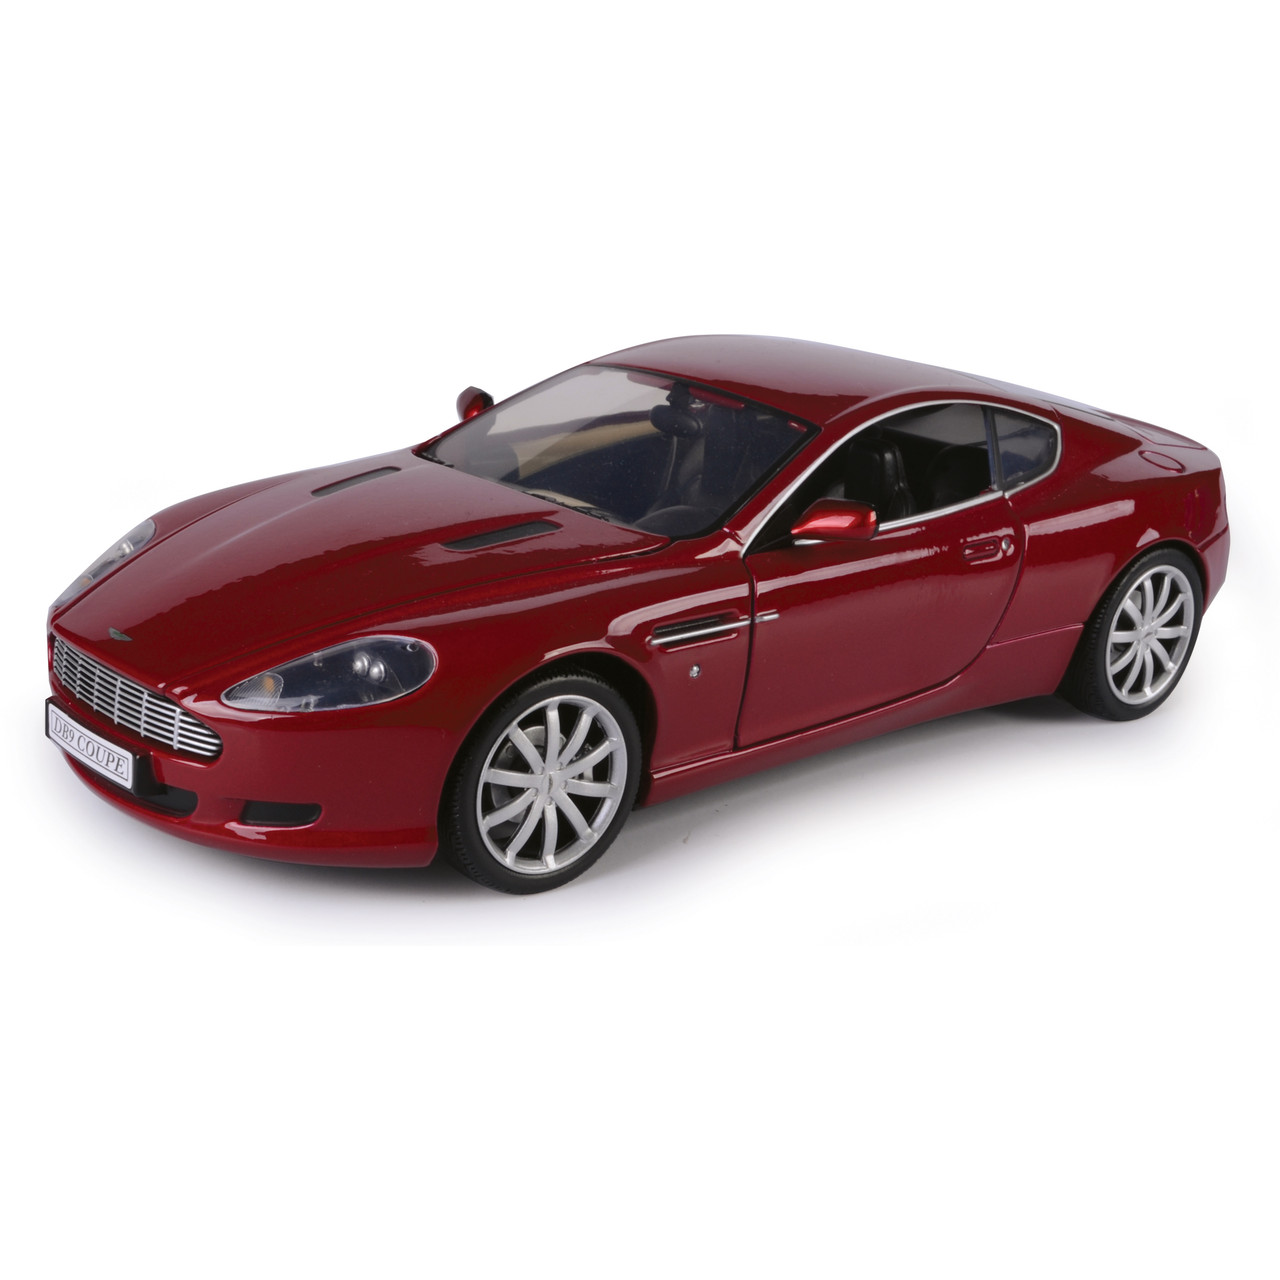 Aston Martin Db9 Coupe Red 1 18 Scale Diecast Model By Motormax Fairfield Collectibles The 1 Source For High Quality Diecast Scale Model Cars